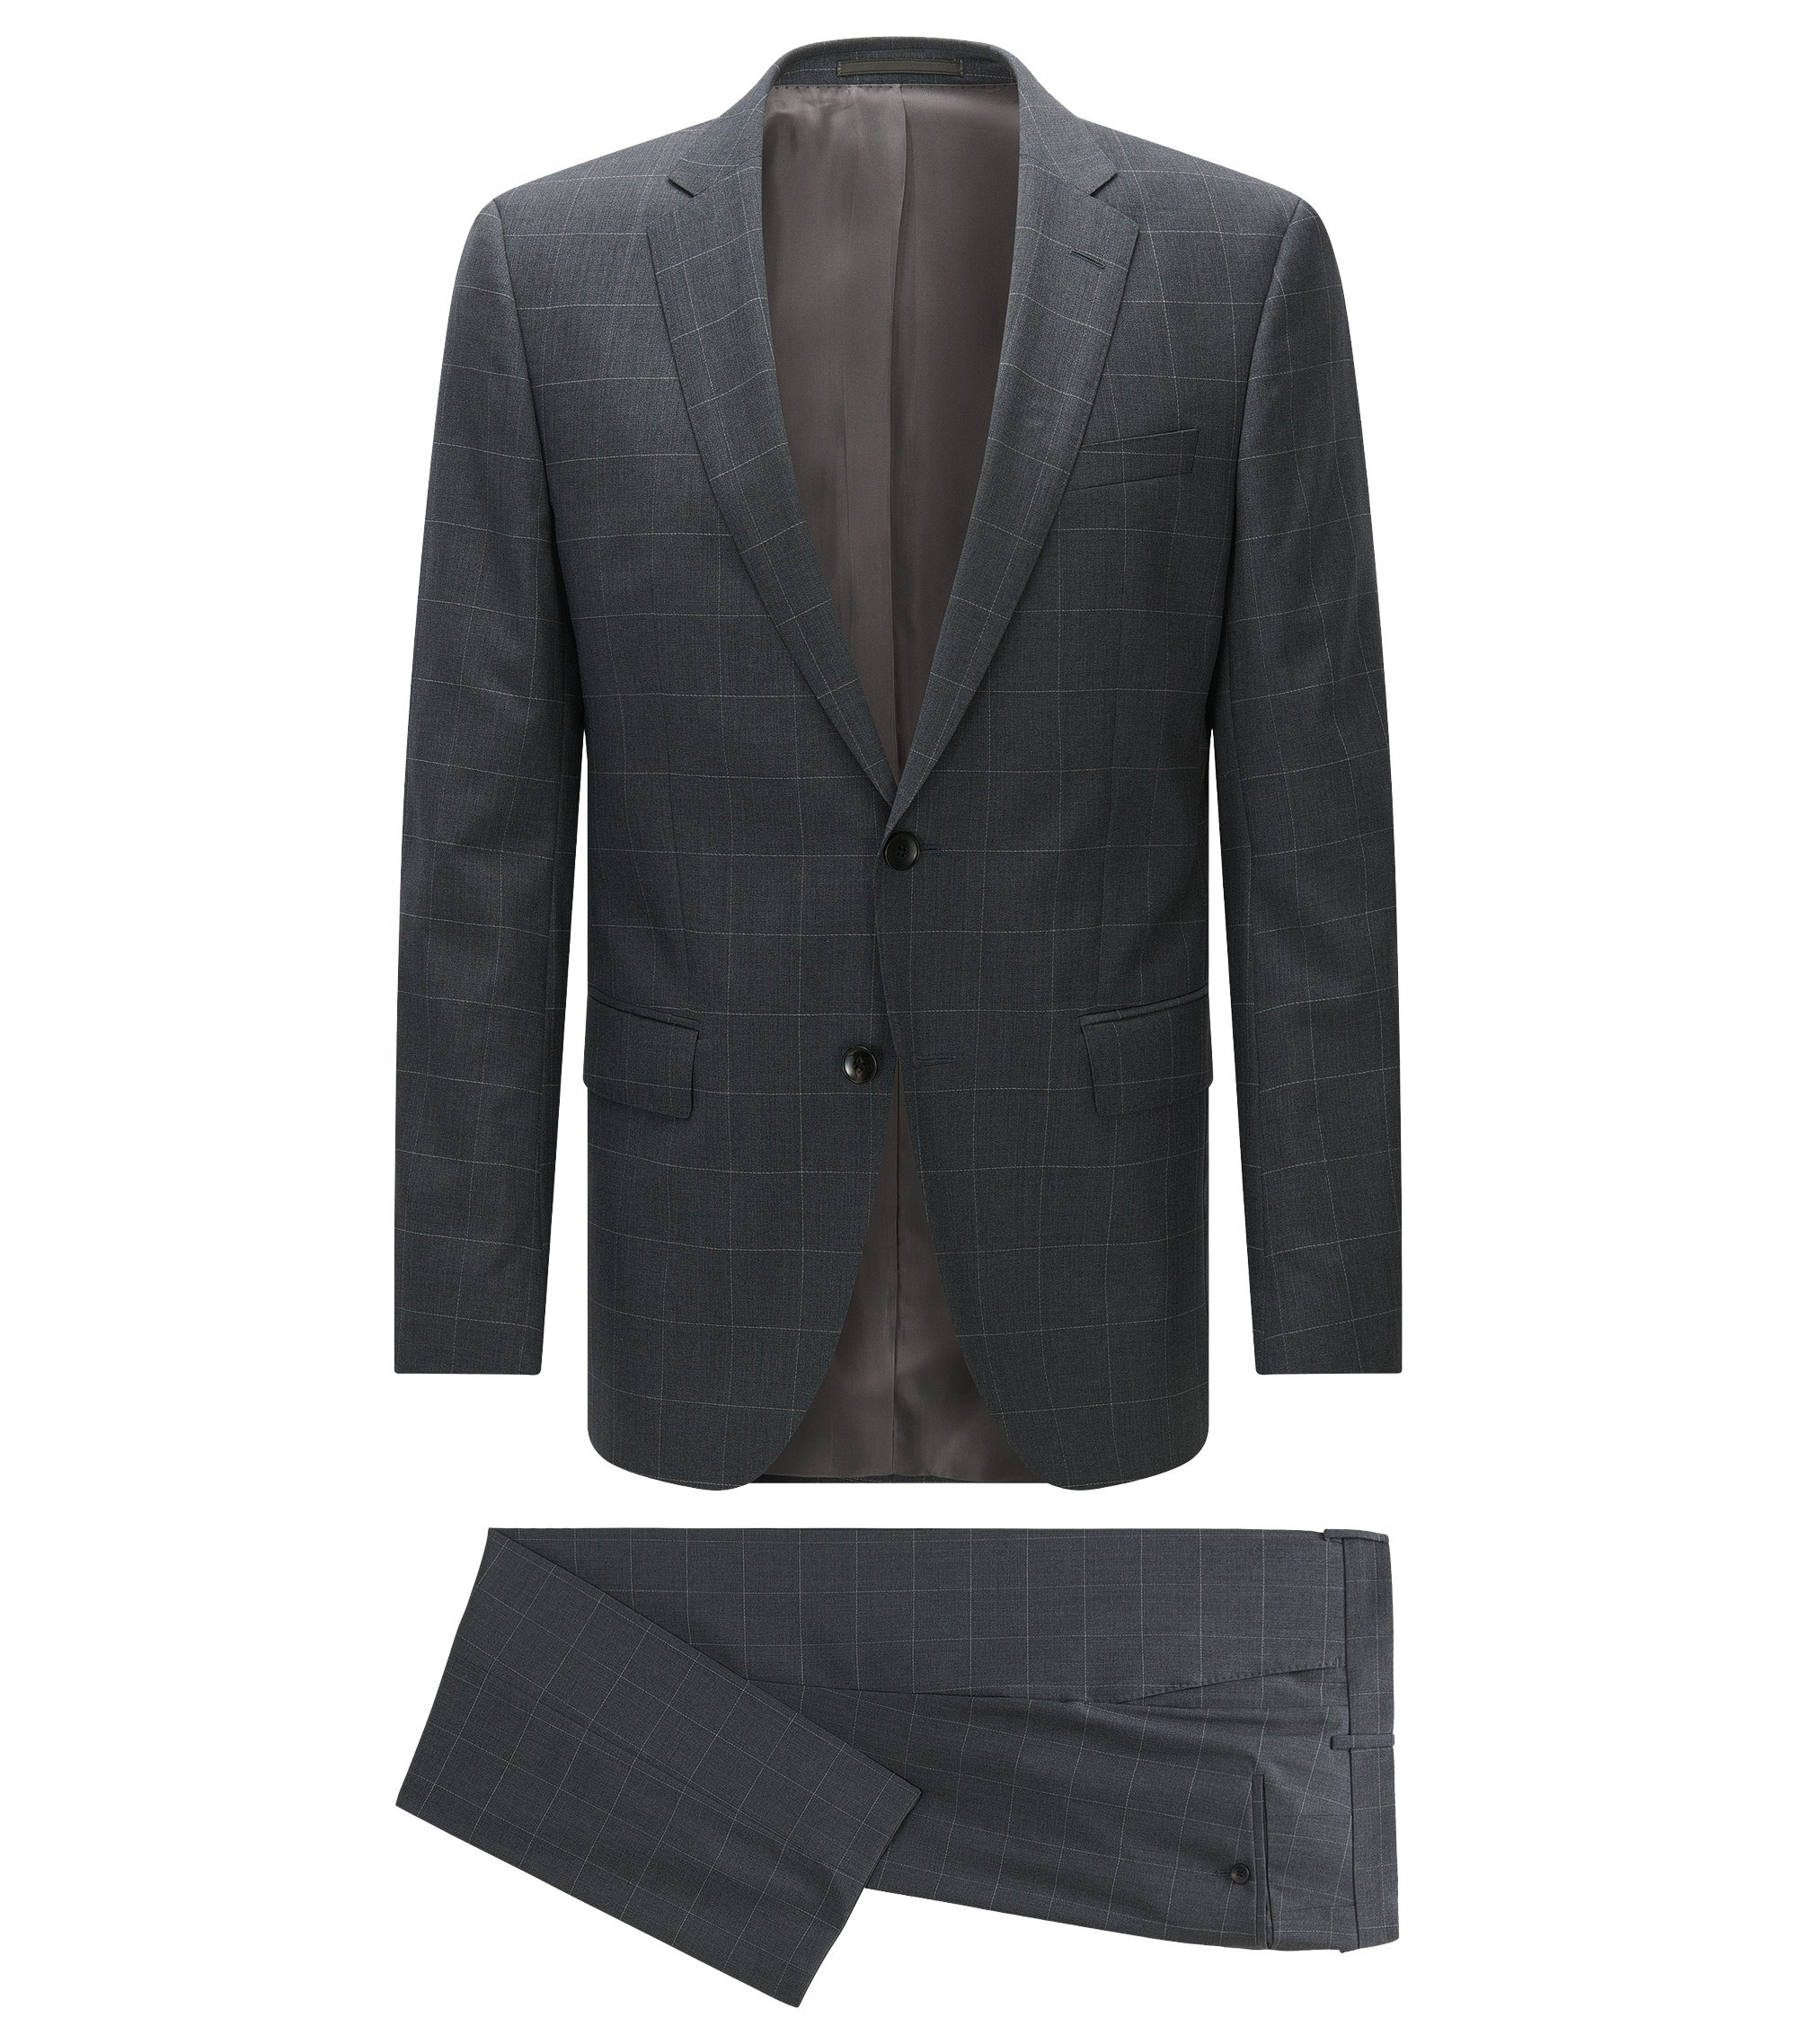 Italian Wool Suit, Slim Fit | Huge/Genius, Grey